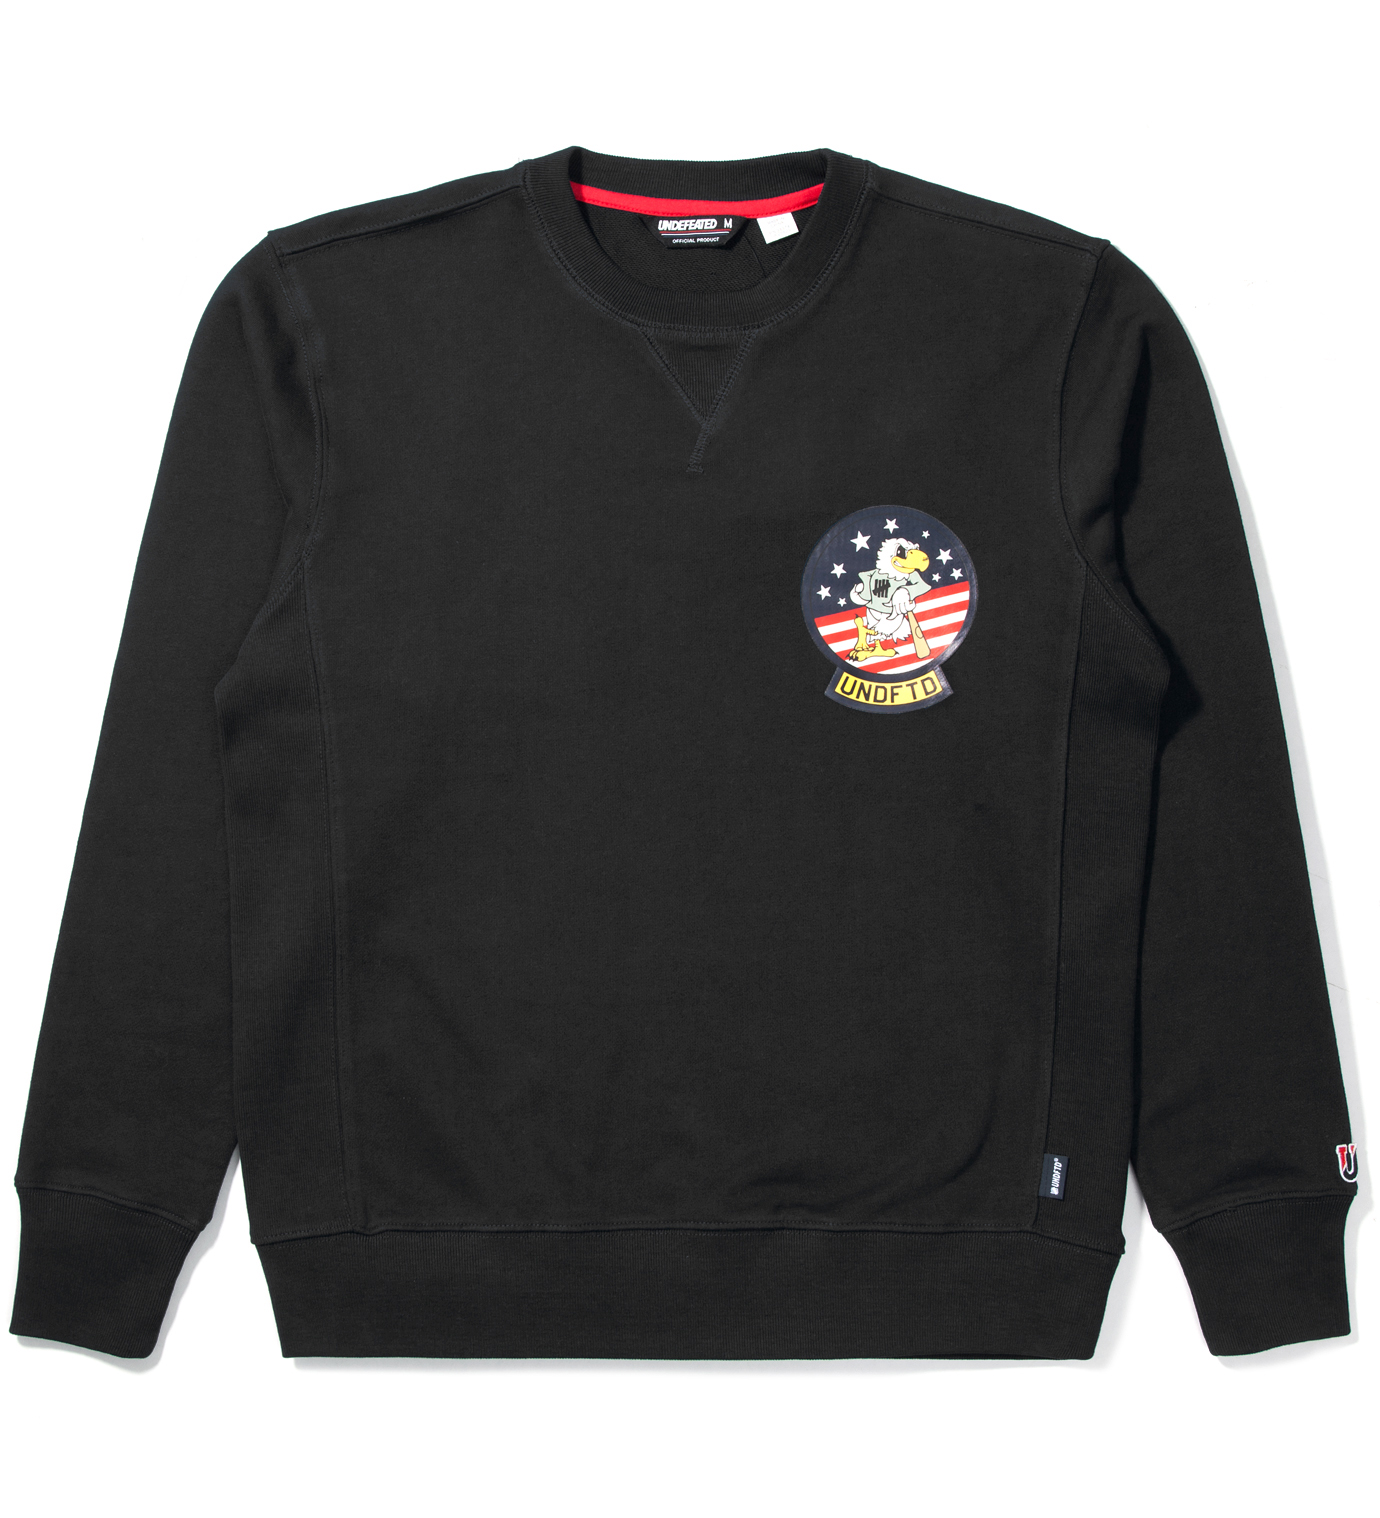 UNDEFEATED Black Eagle Crewneck